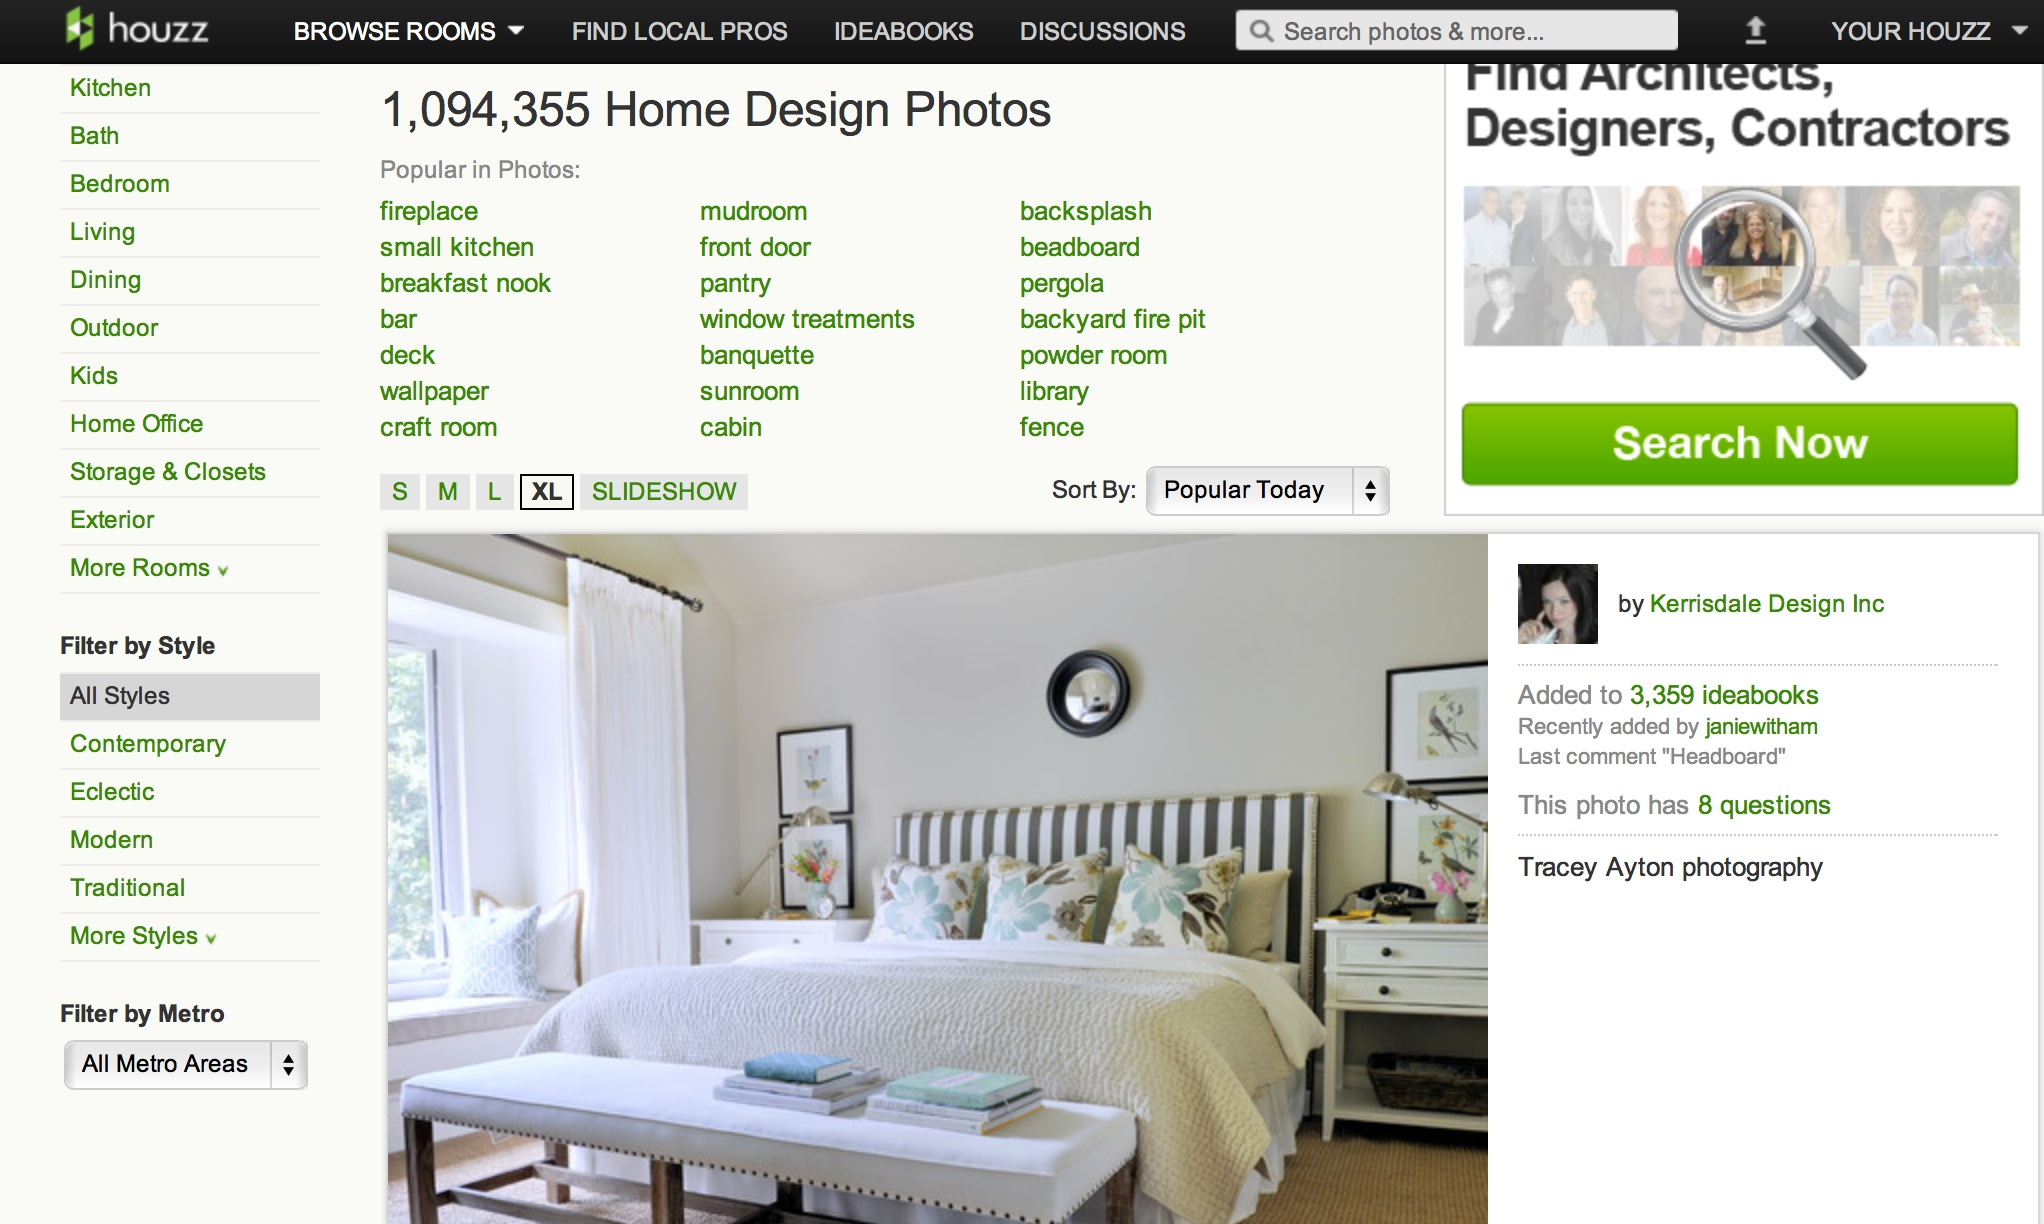 Home remodeling app houzz brings home 35 million lauren for Apps for home remodeling